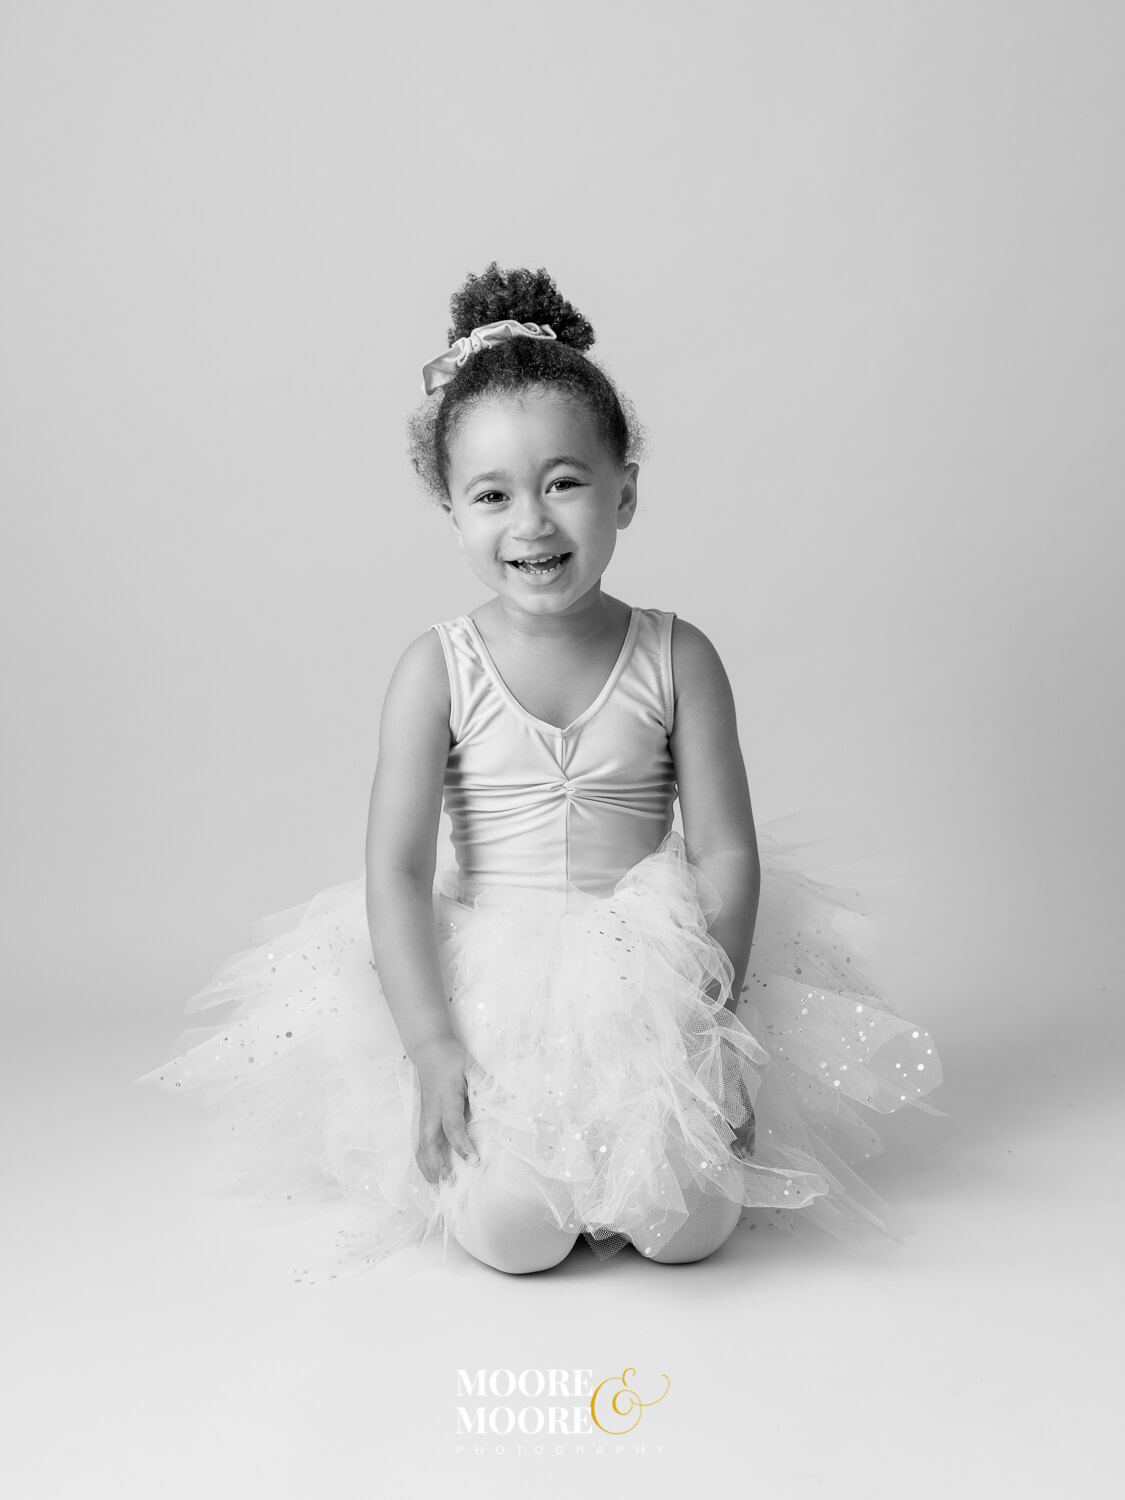 Kids ballet Dance Photography at Moore & Moore Photography